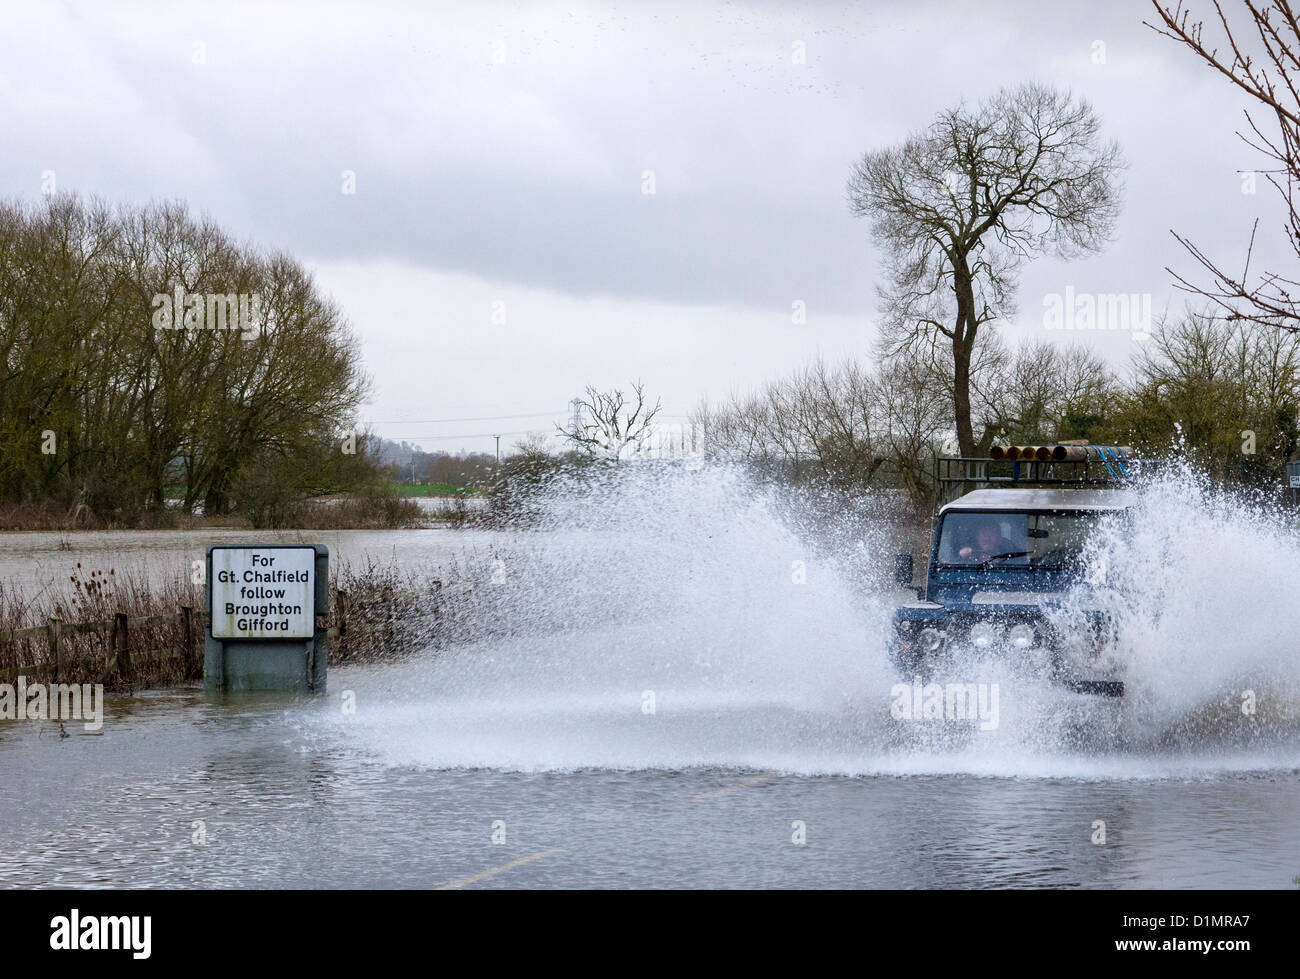 Motorists braving floods at Melksham in Wiltshire after heavy rains caused the River Avon to burst its banks - Stock Image